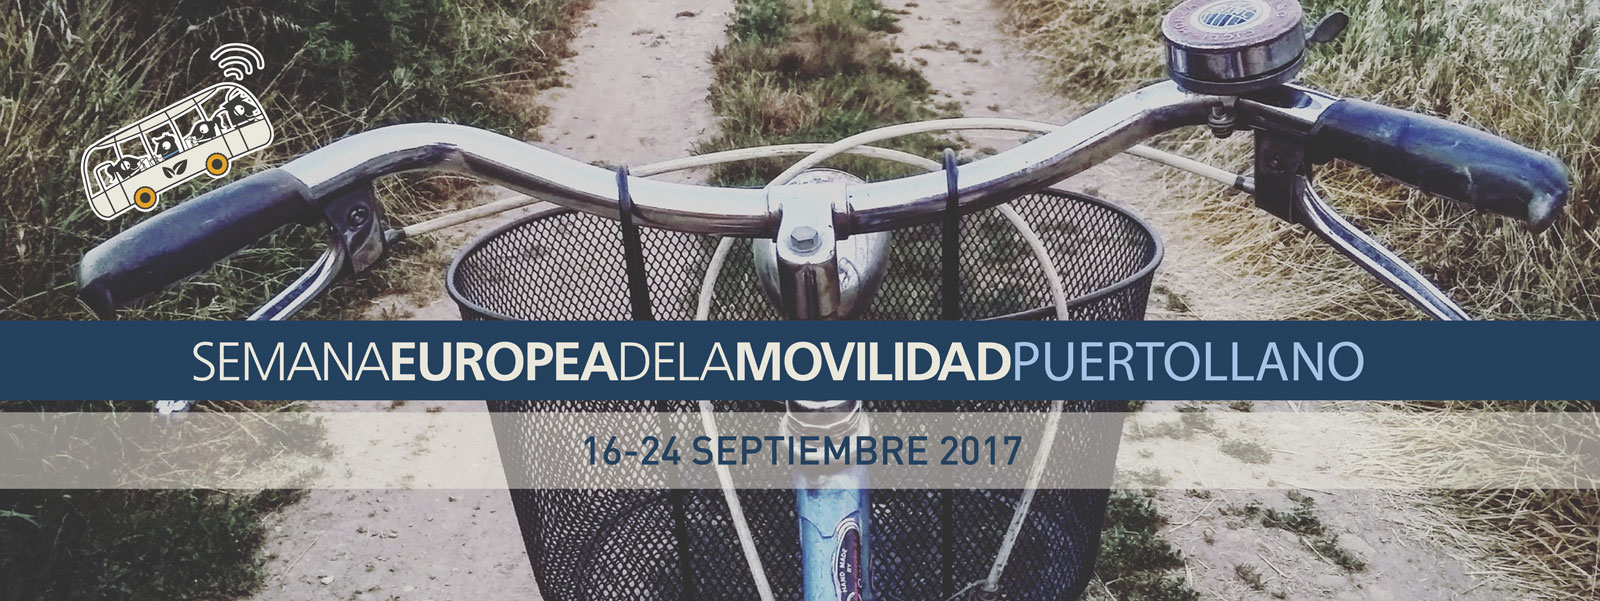 manillar frontal Semana Europea de la Movilidad 2017